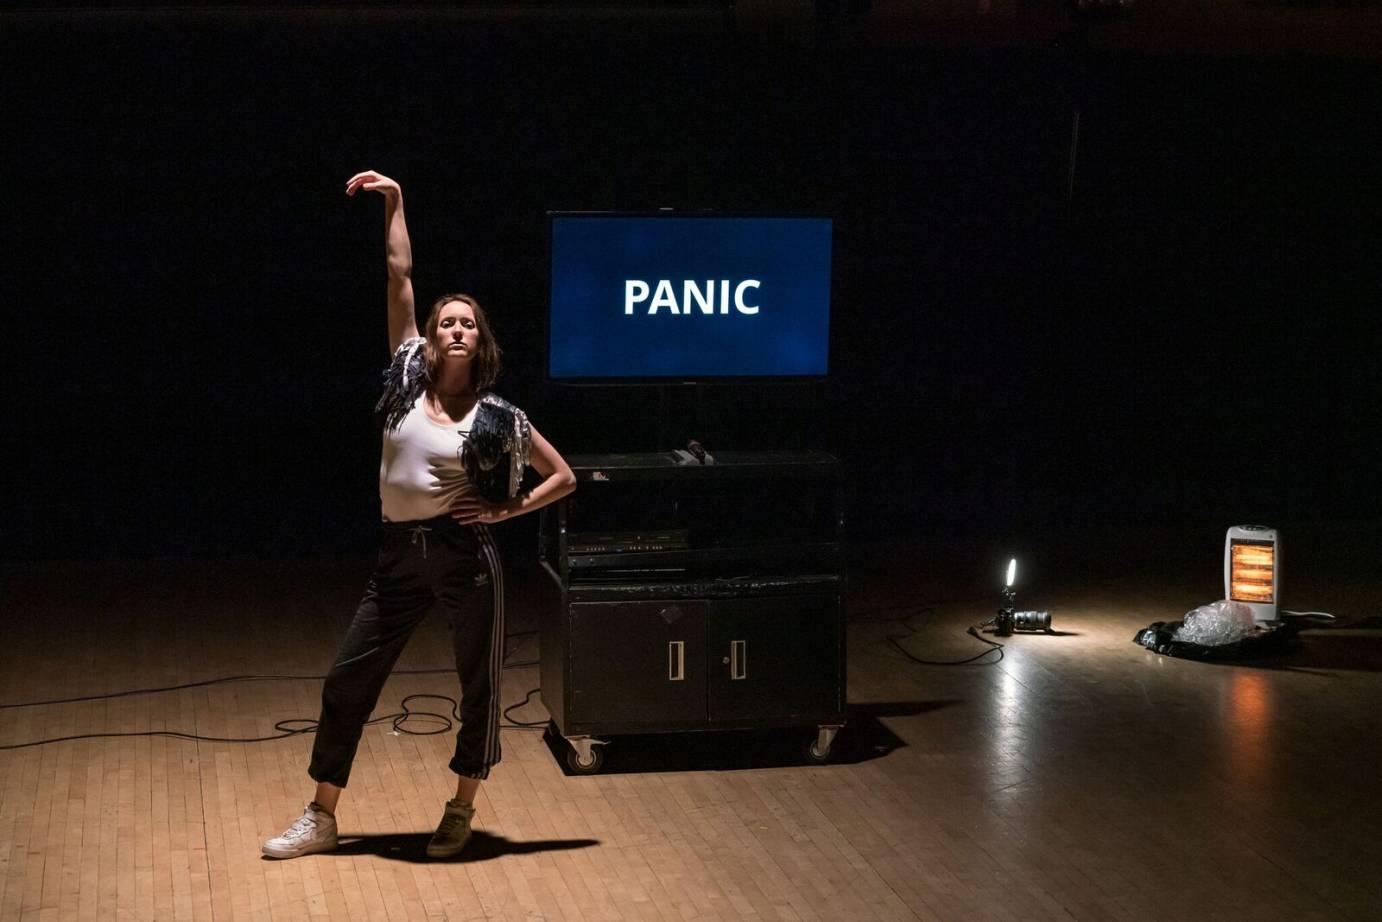 A woman strikes a disco pose in front of a video that says PANIC